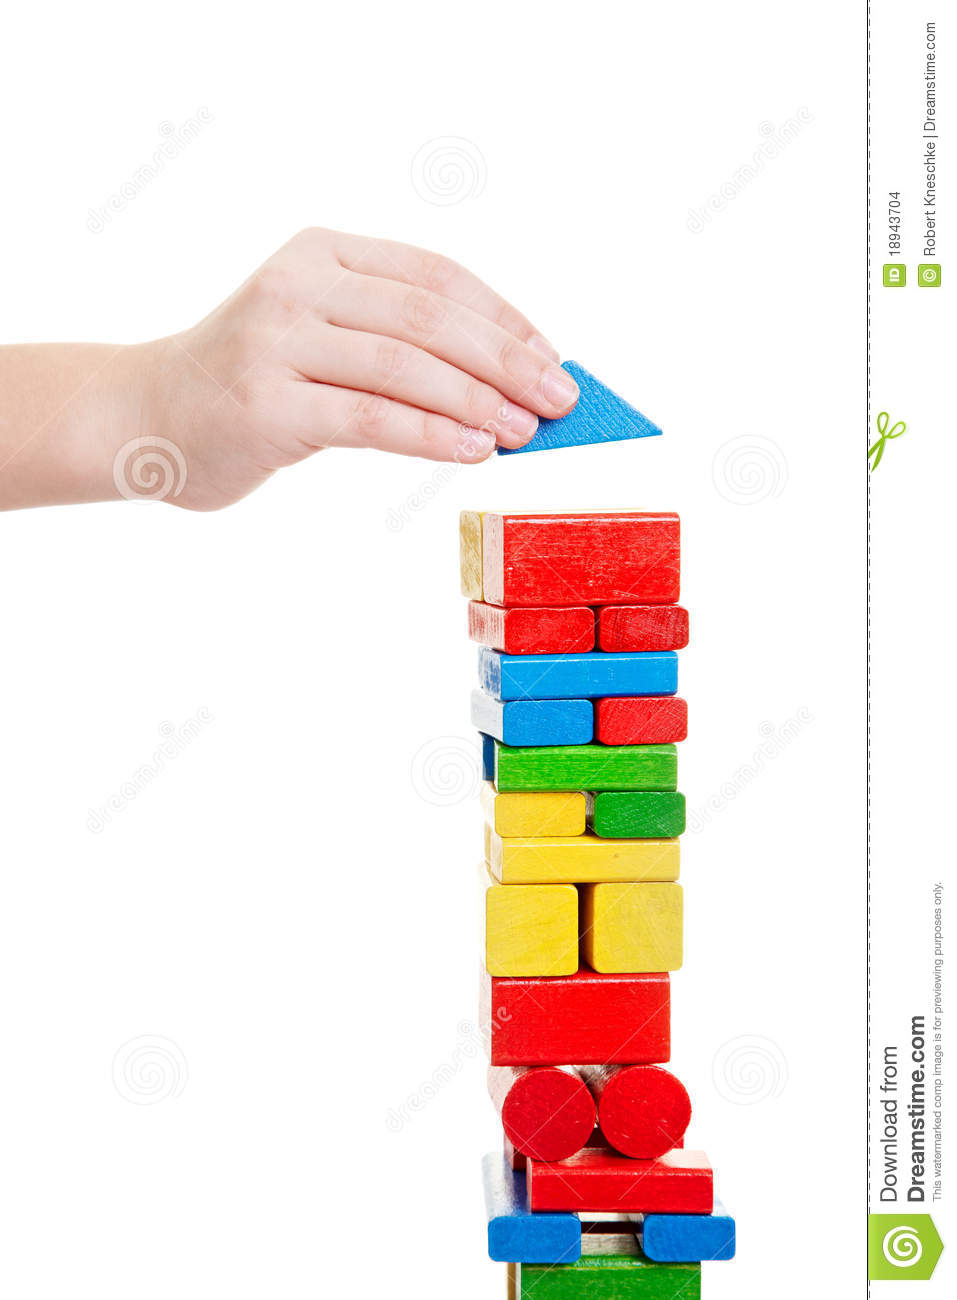 Hand building tower